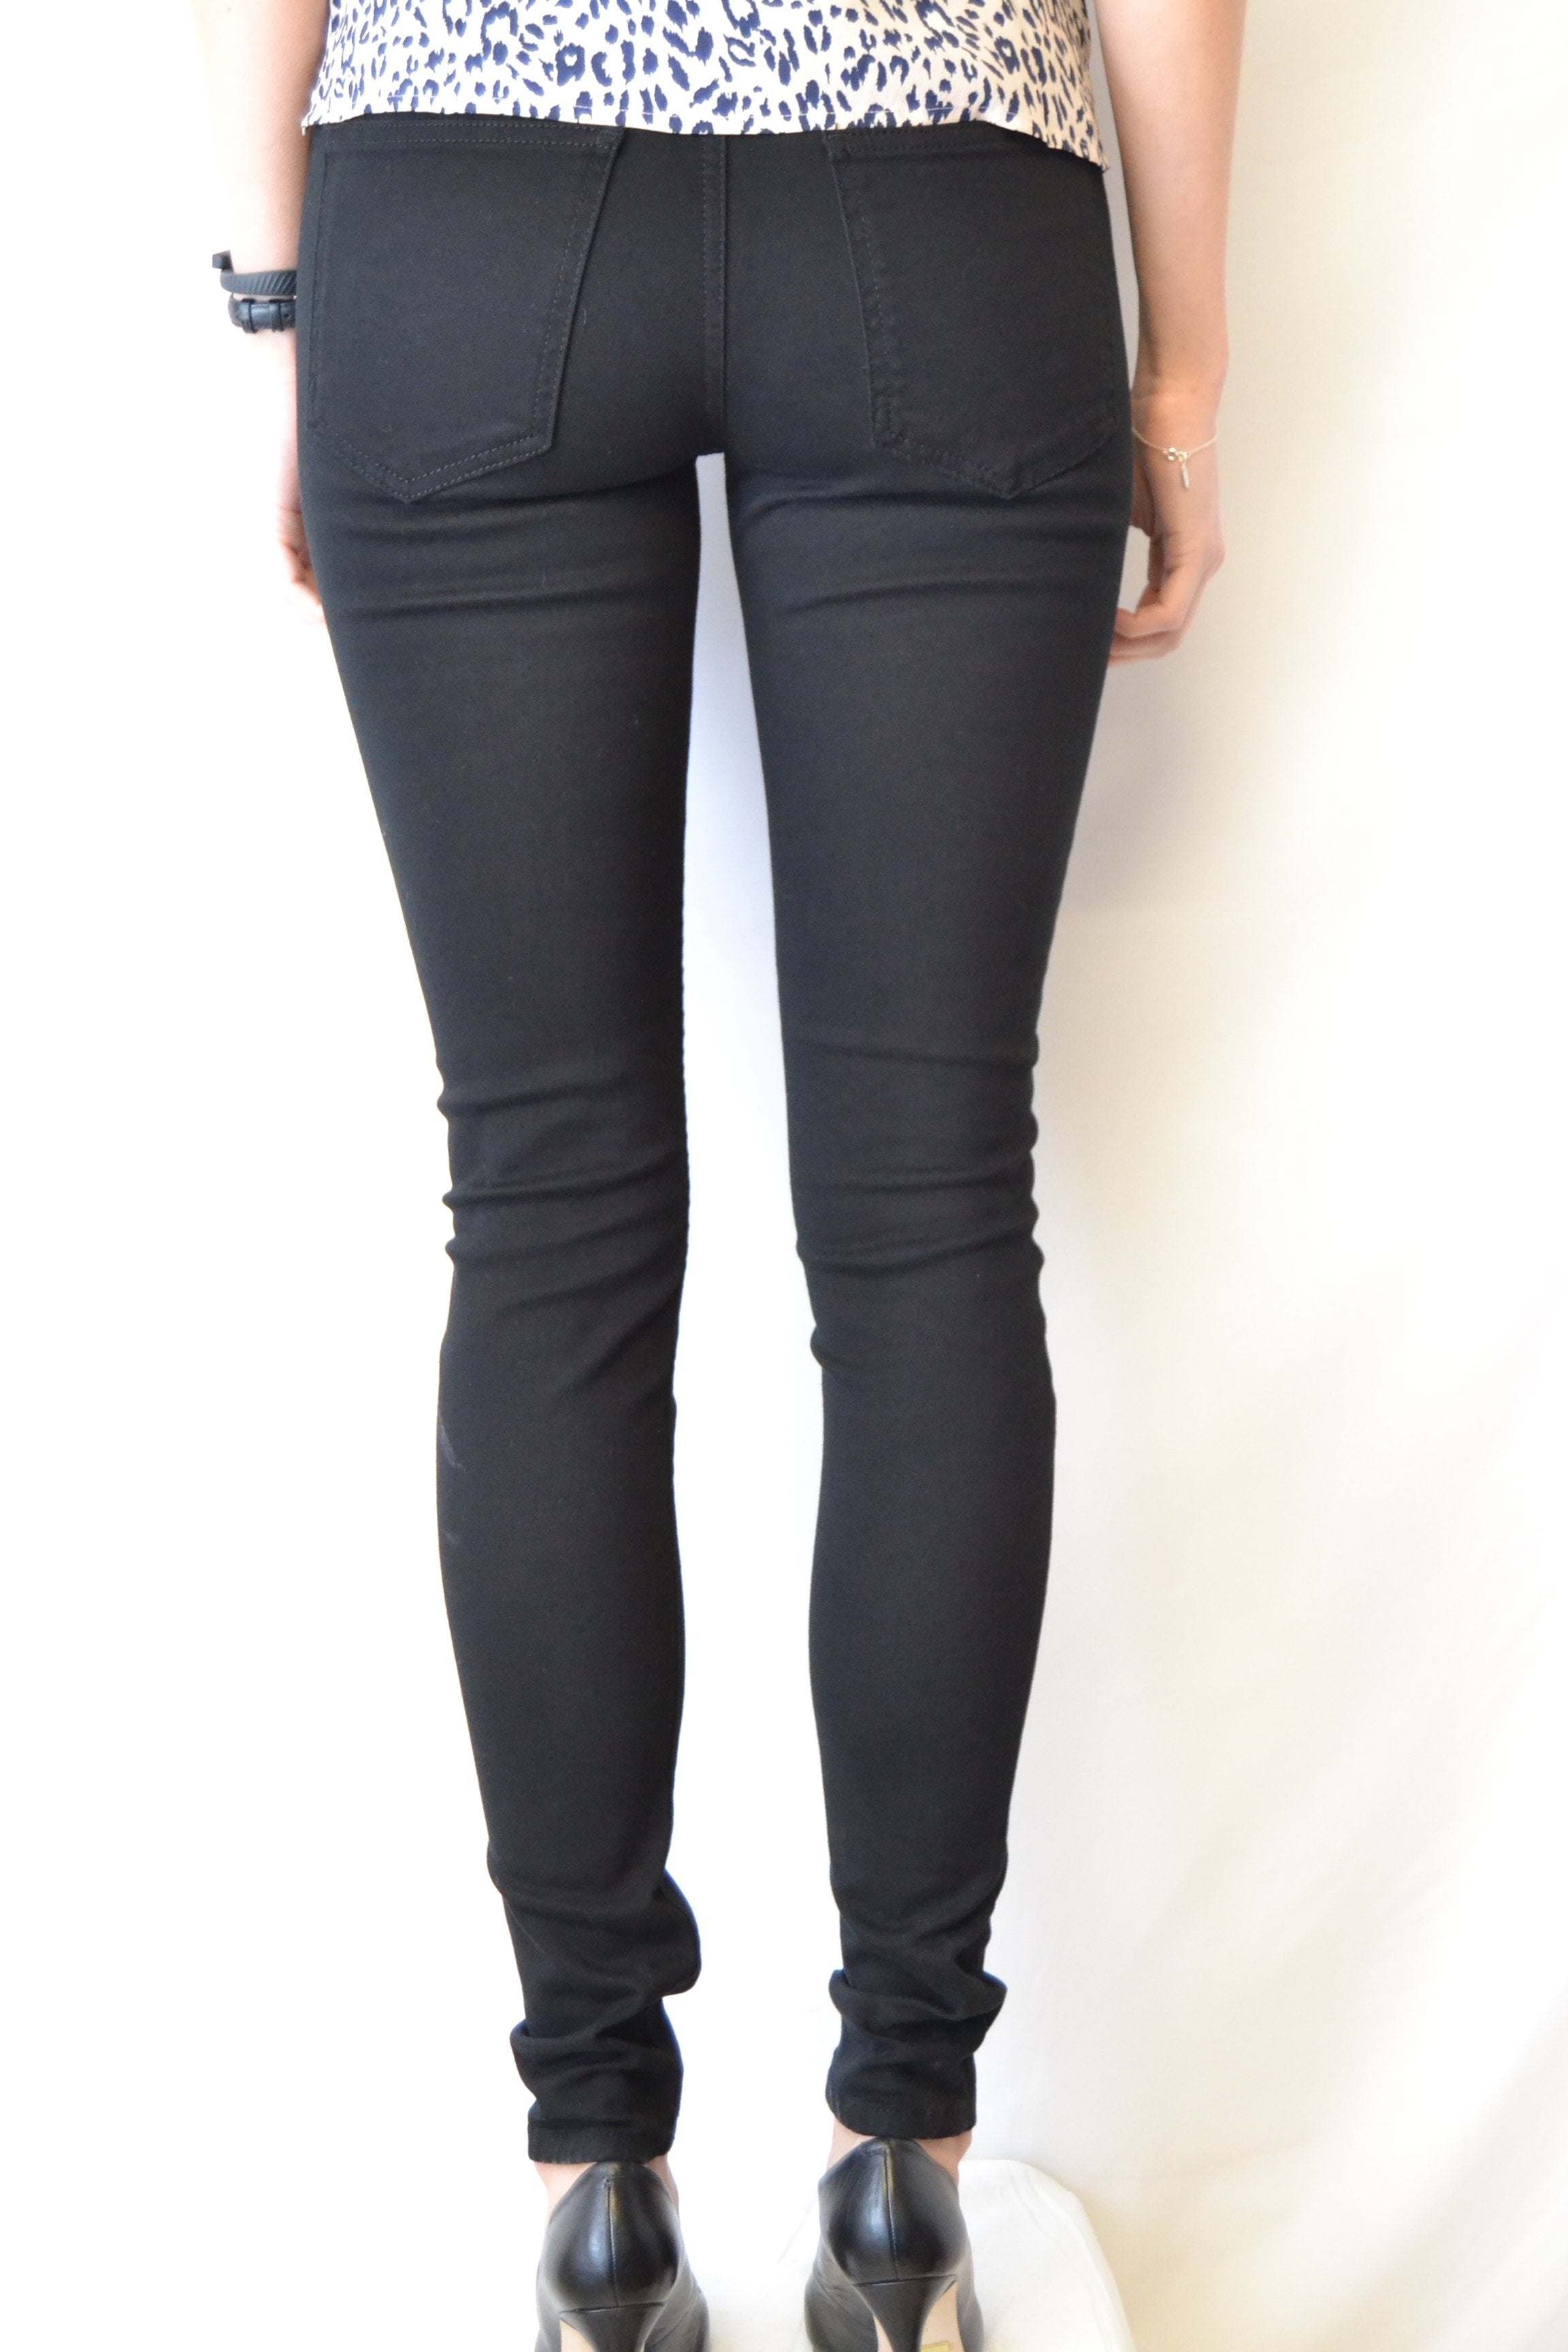 Just Female Stroke Jeans black twill - Mojo Independent Store